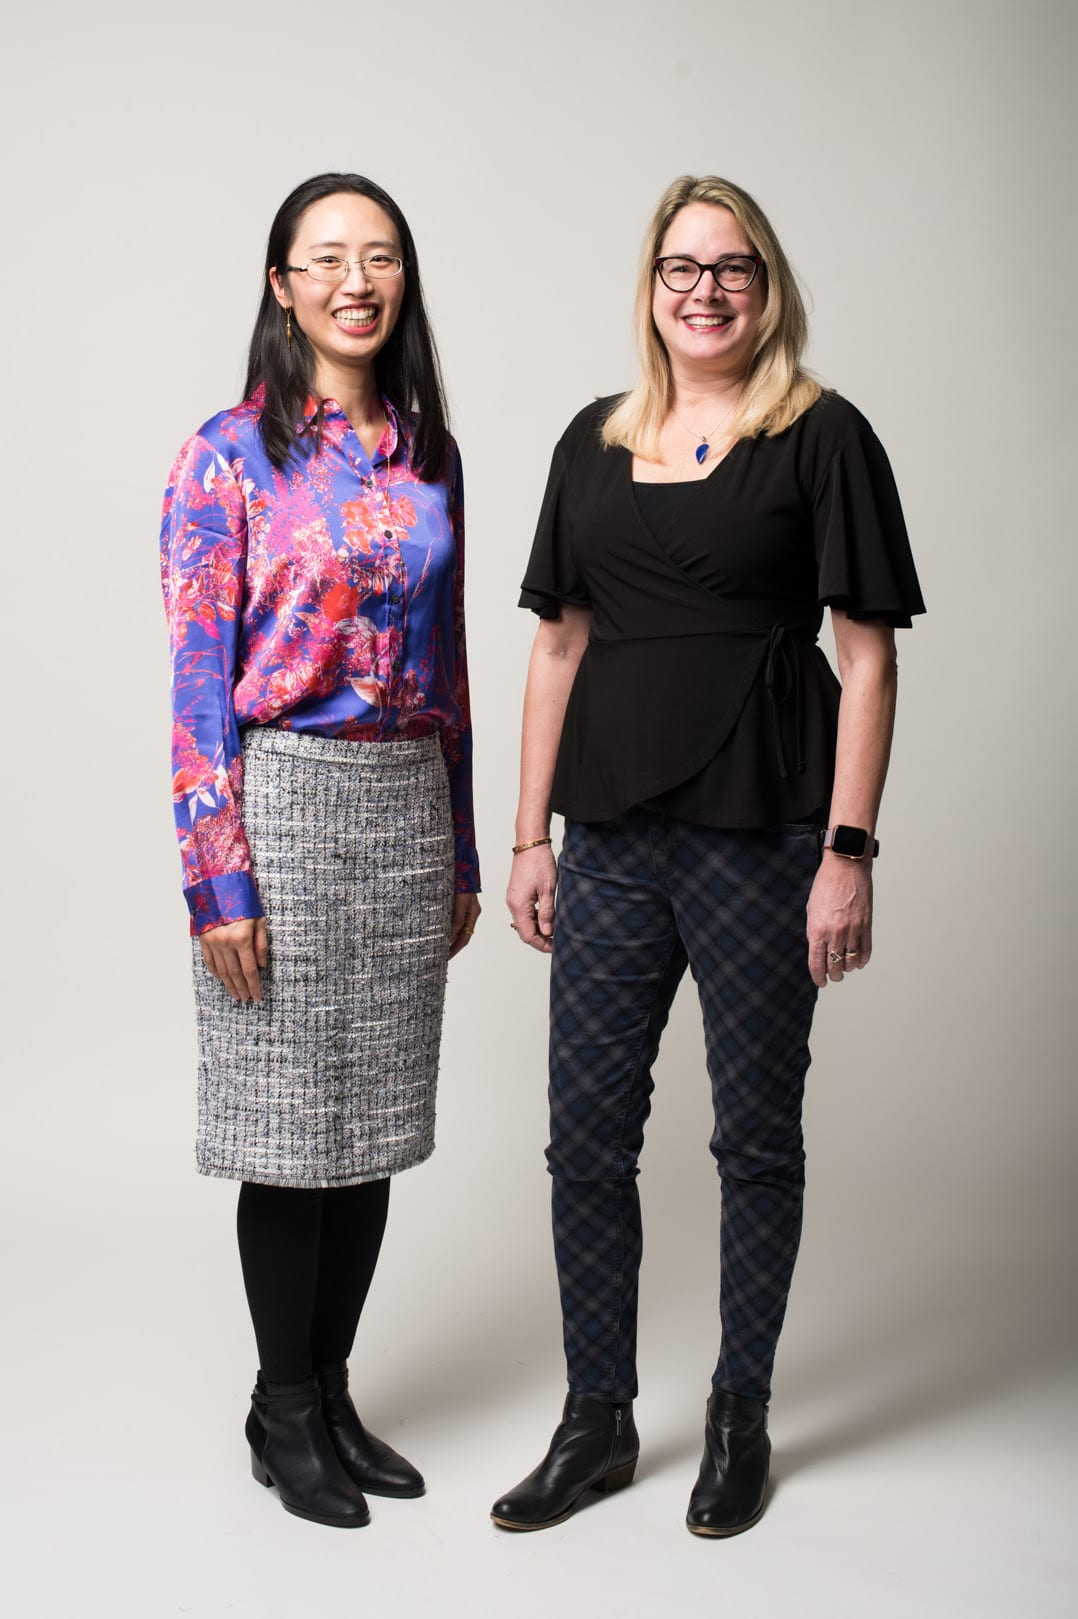 The Research Foundation announced the 2018 Early Career Investigator Award recipients March 8. Assistant Professor Minghui Diao, Department of Meteorology and Climate Science, College of Science, left, and Assistant Professor Susan Snycerski, from the Department of Psychology, College of Social Sciences, will receive their awards on April 23 at the SJSU Celebration of Research.